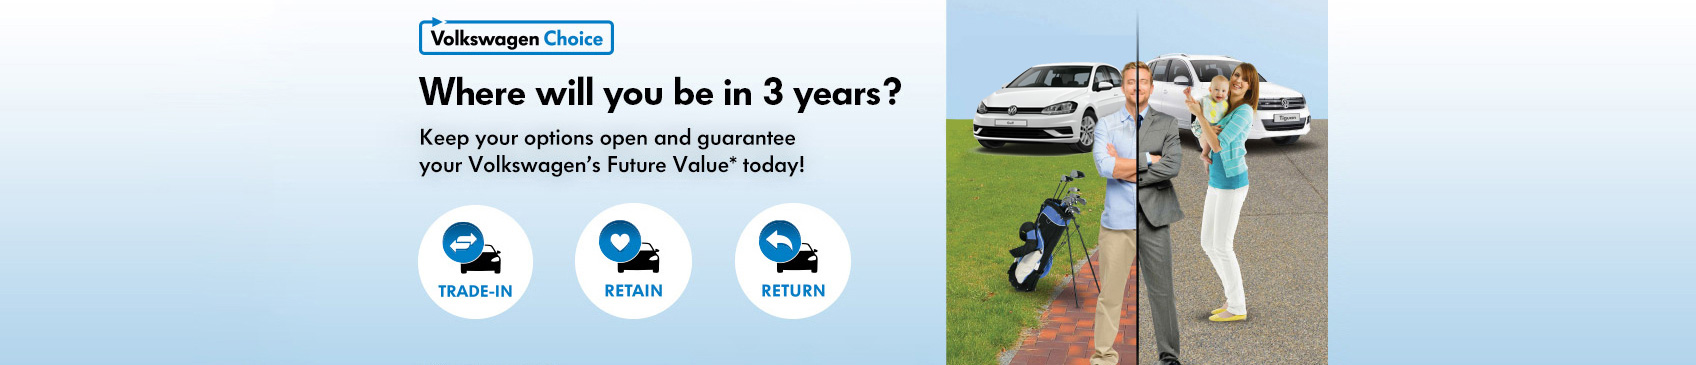 Volkswagen Choice. Keep your options open and guarantee your Volkswagen's Future Value.